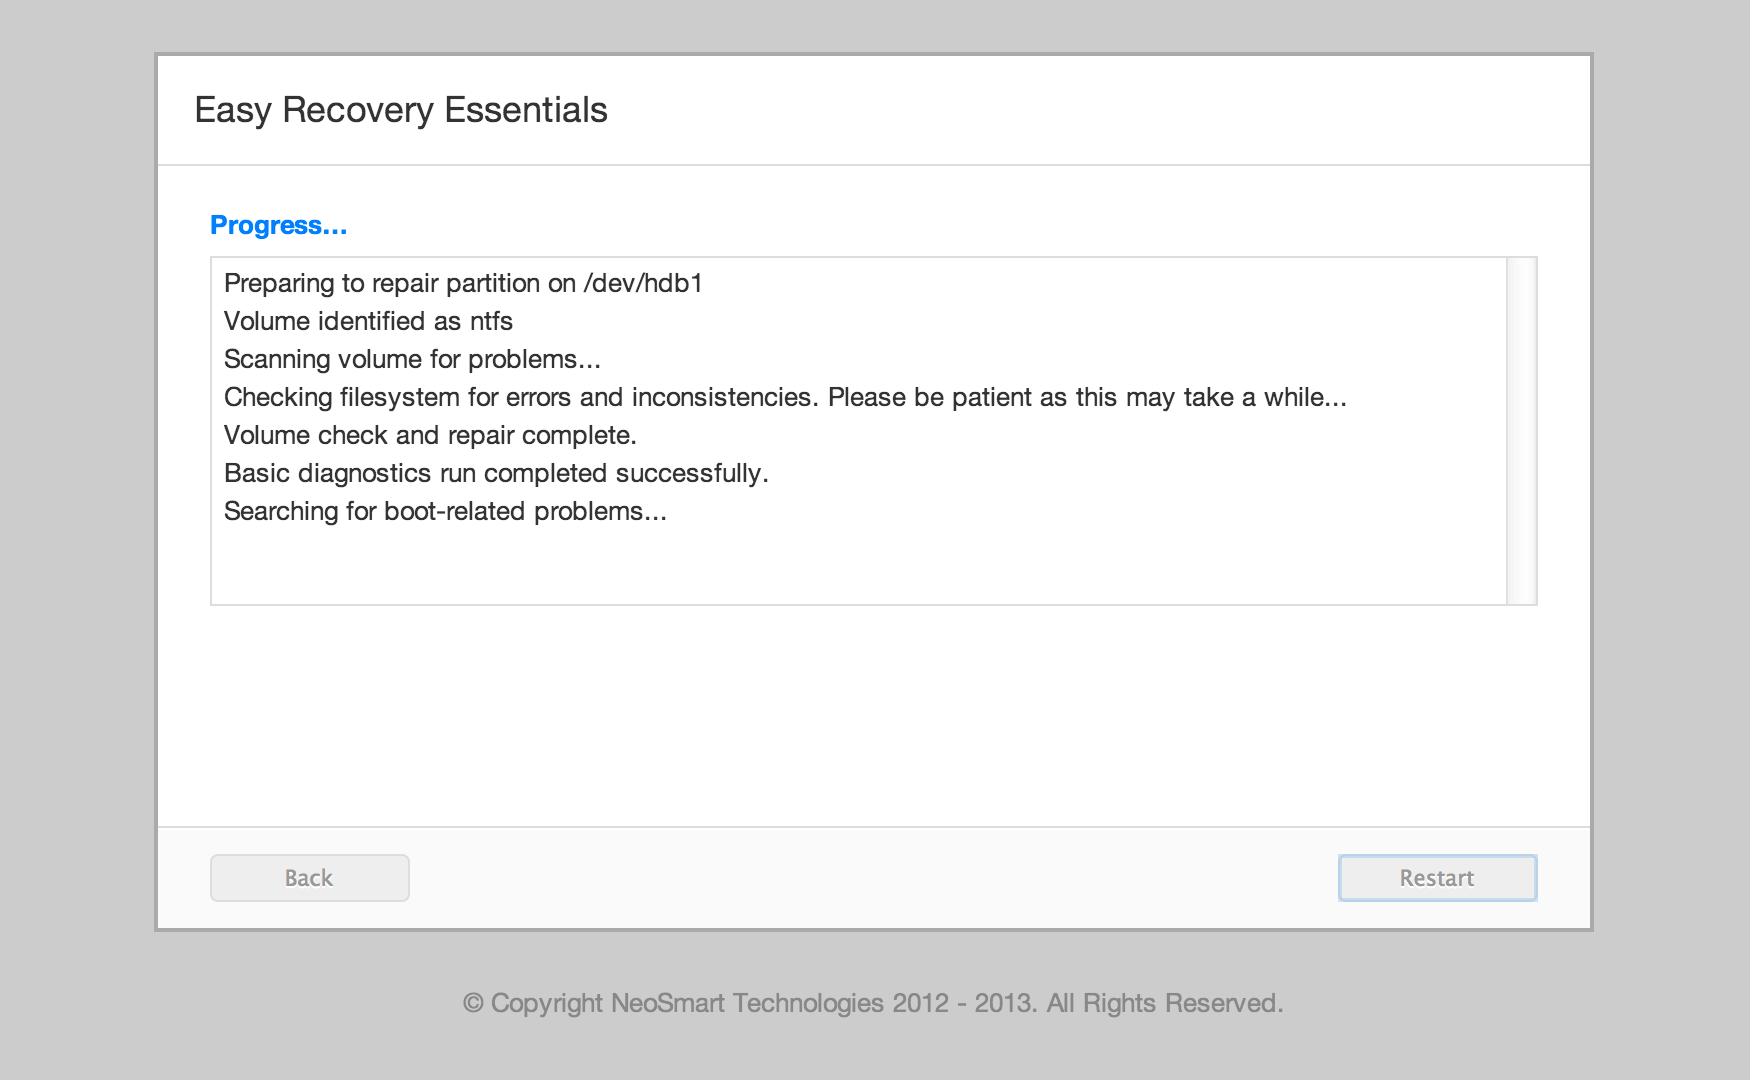 ... Easy Recovery Essentials will now begin to fix errors automatically